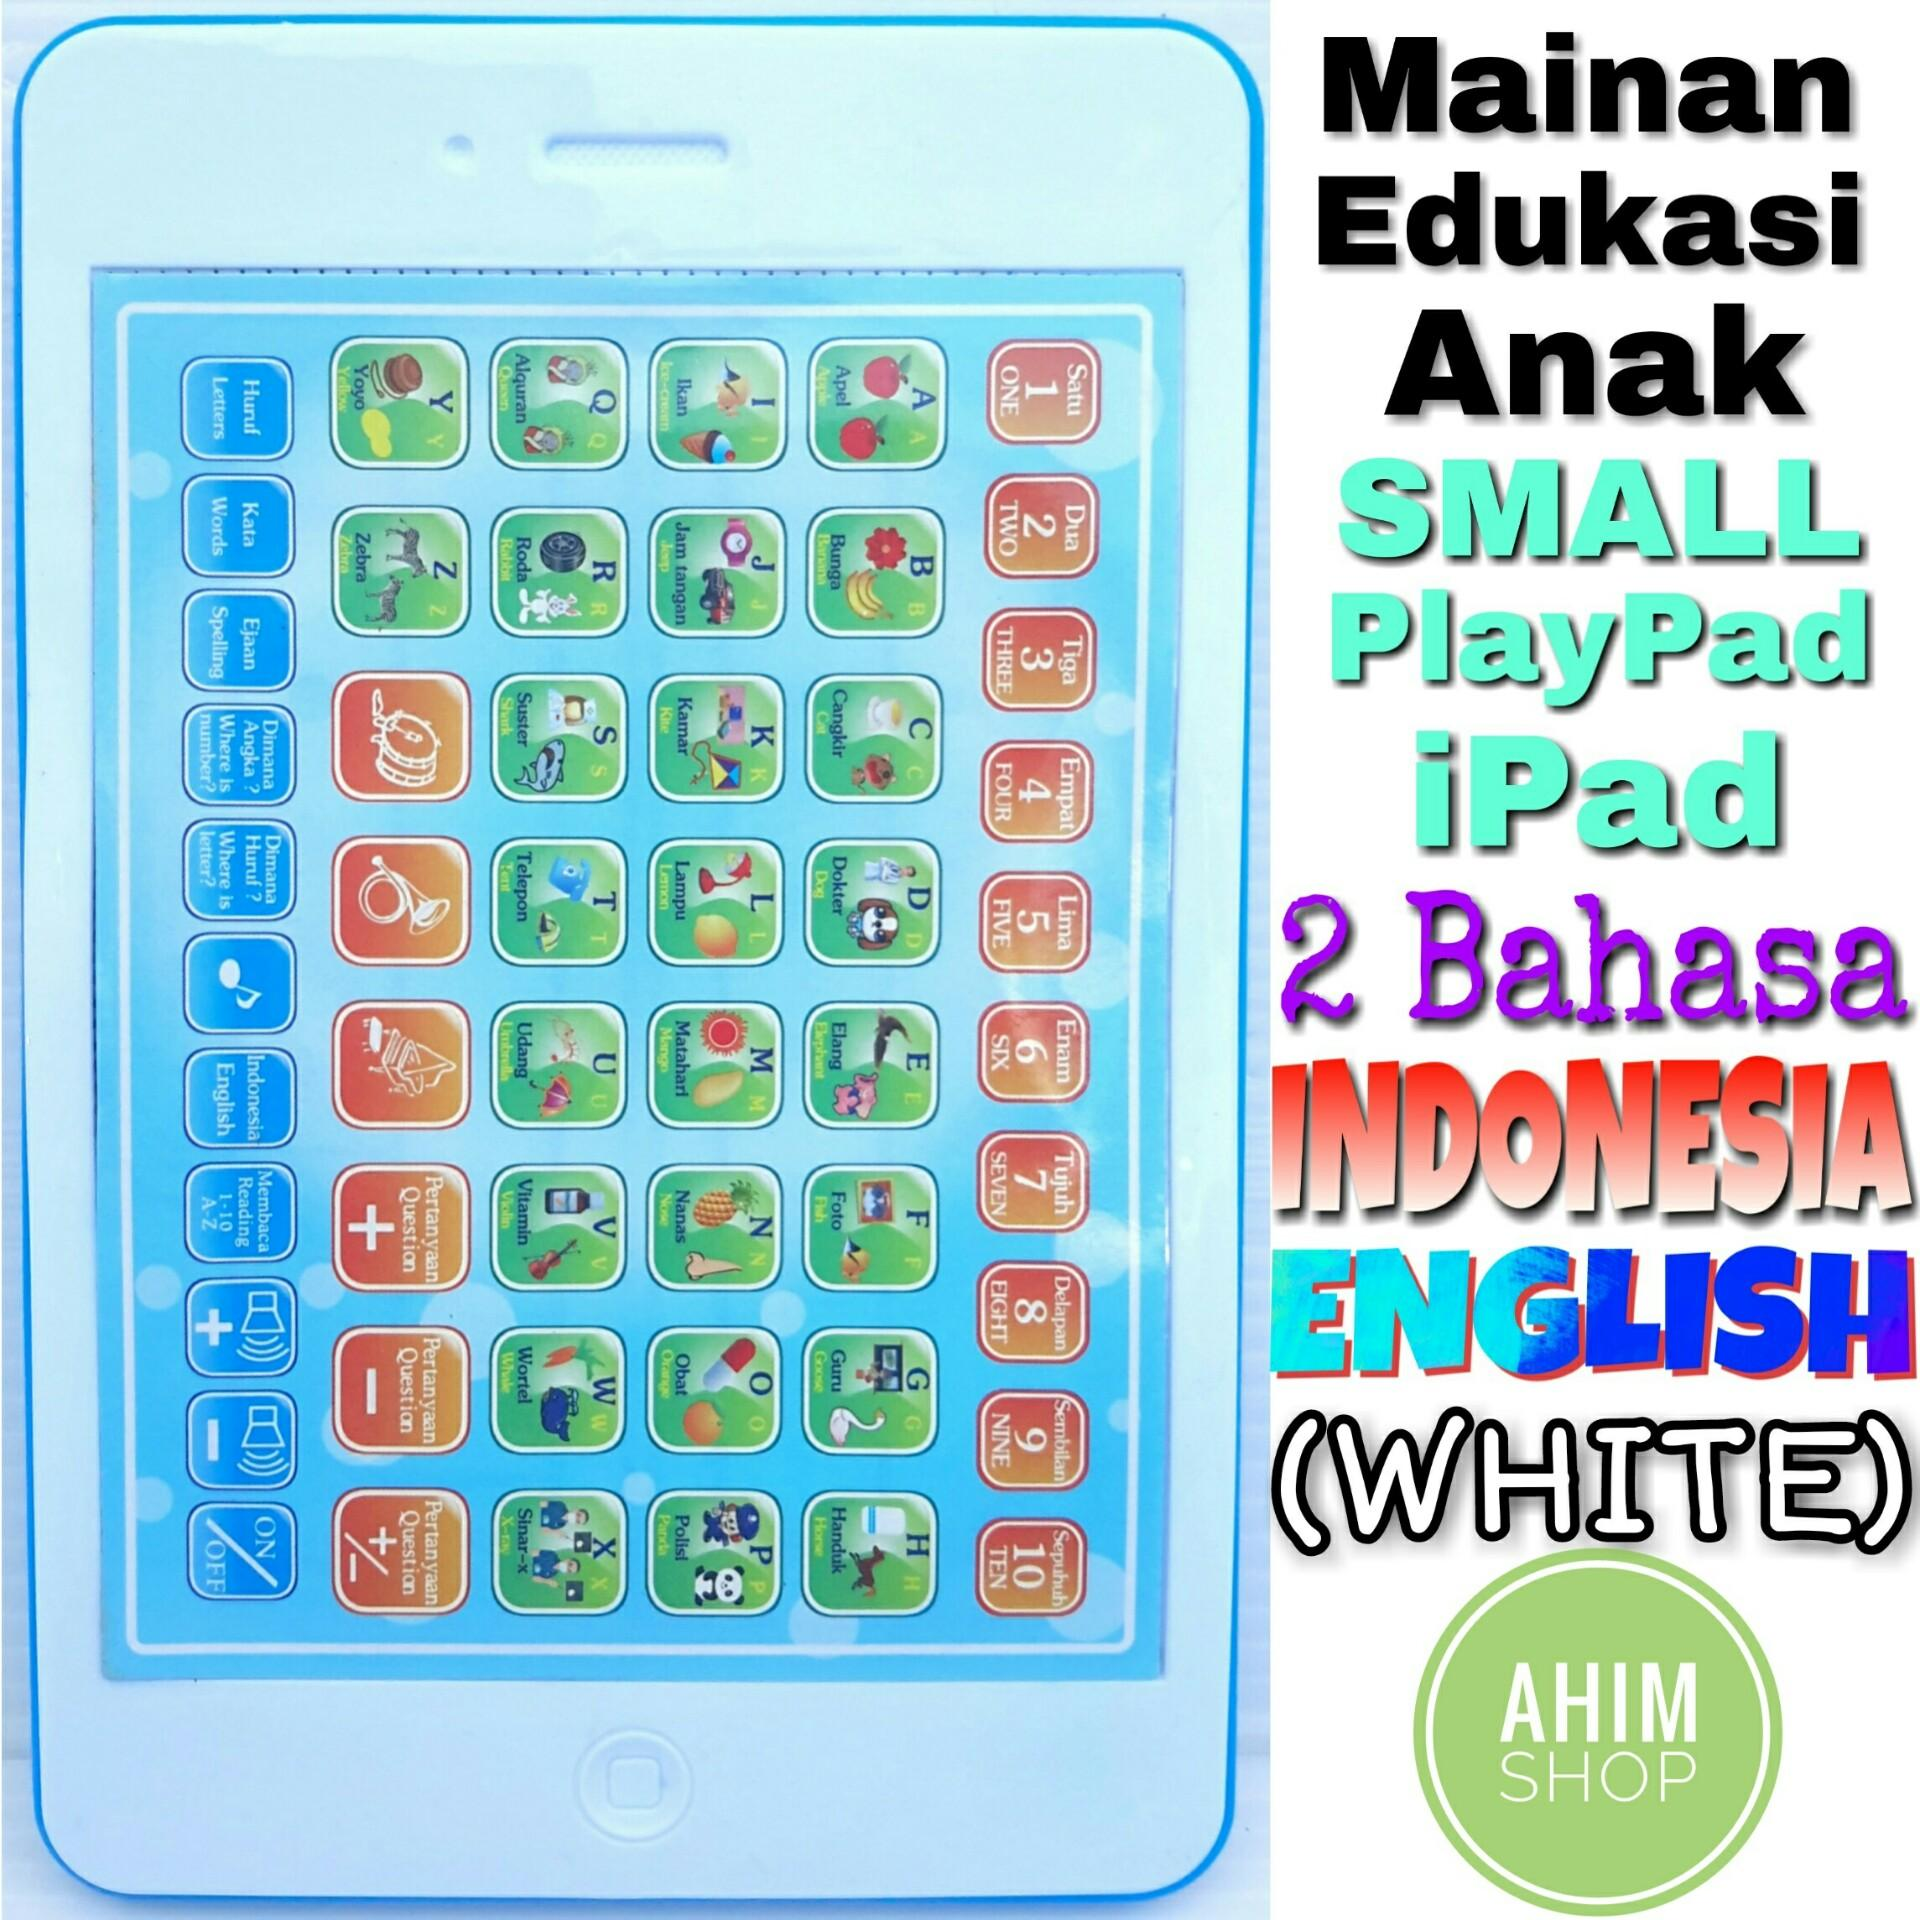 White Mainan Edukasi Anak 18 Fungsi SMALL PlayPad iPad 2 Bahasa Indonesia–